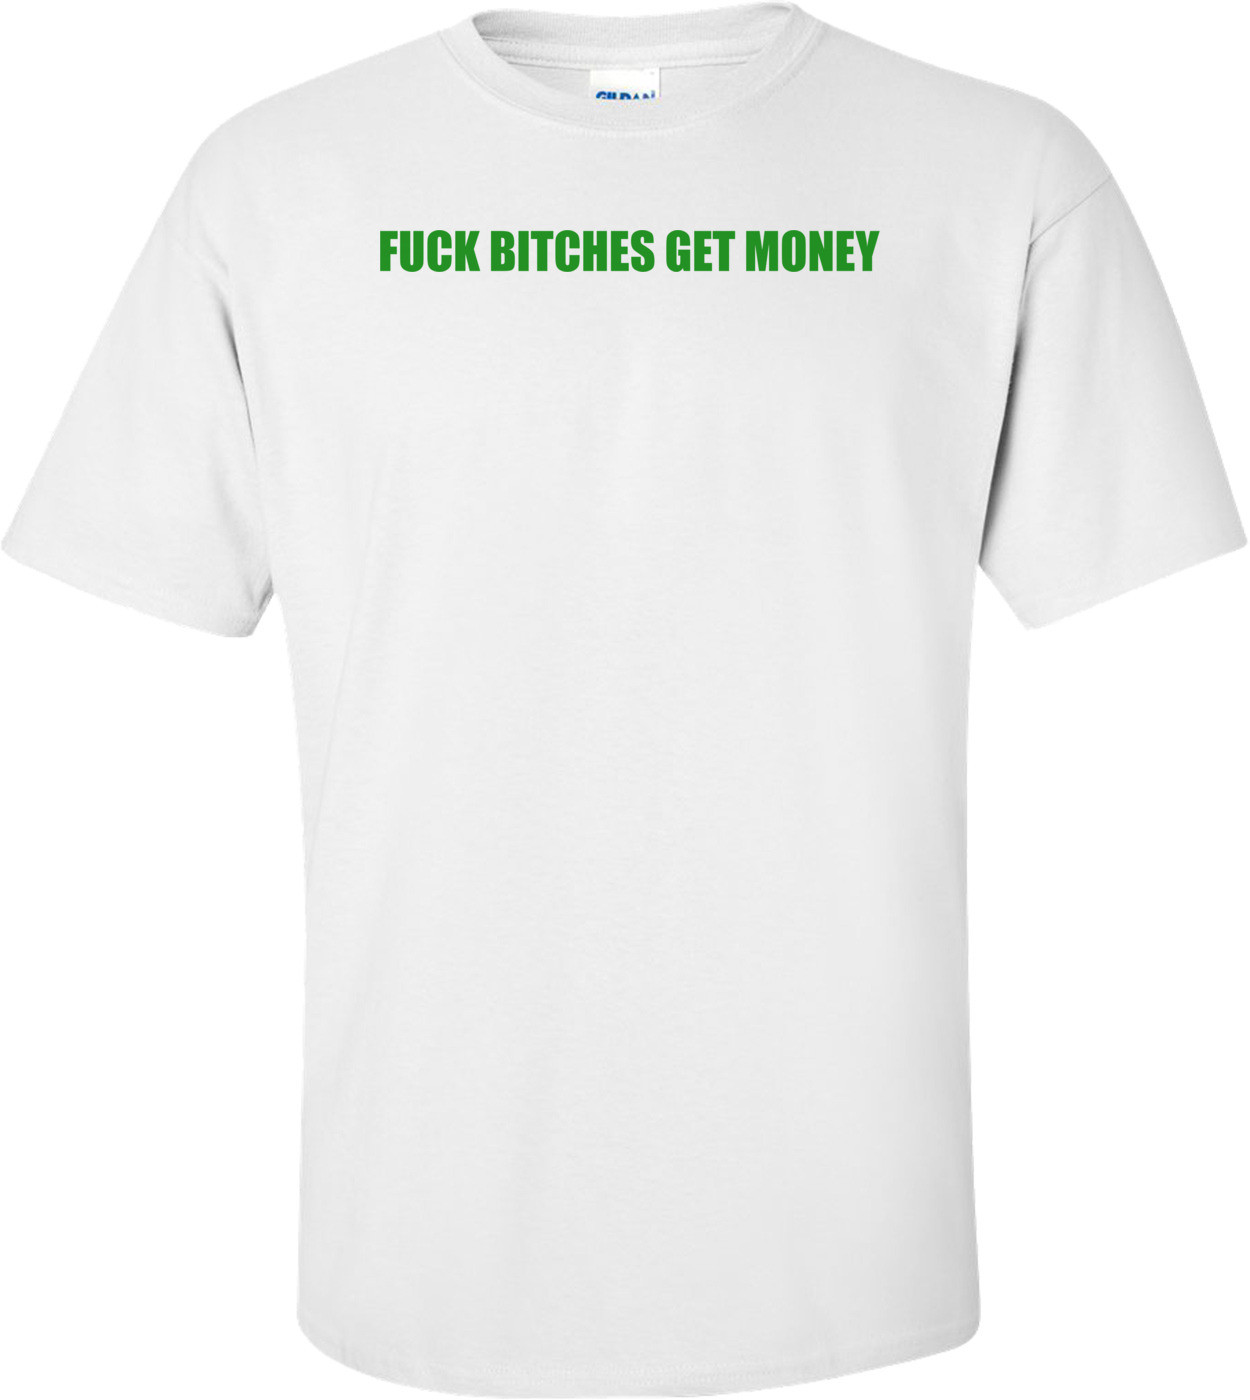 FUCK BITCHES GET MONEY Shirt